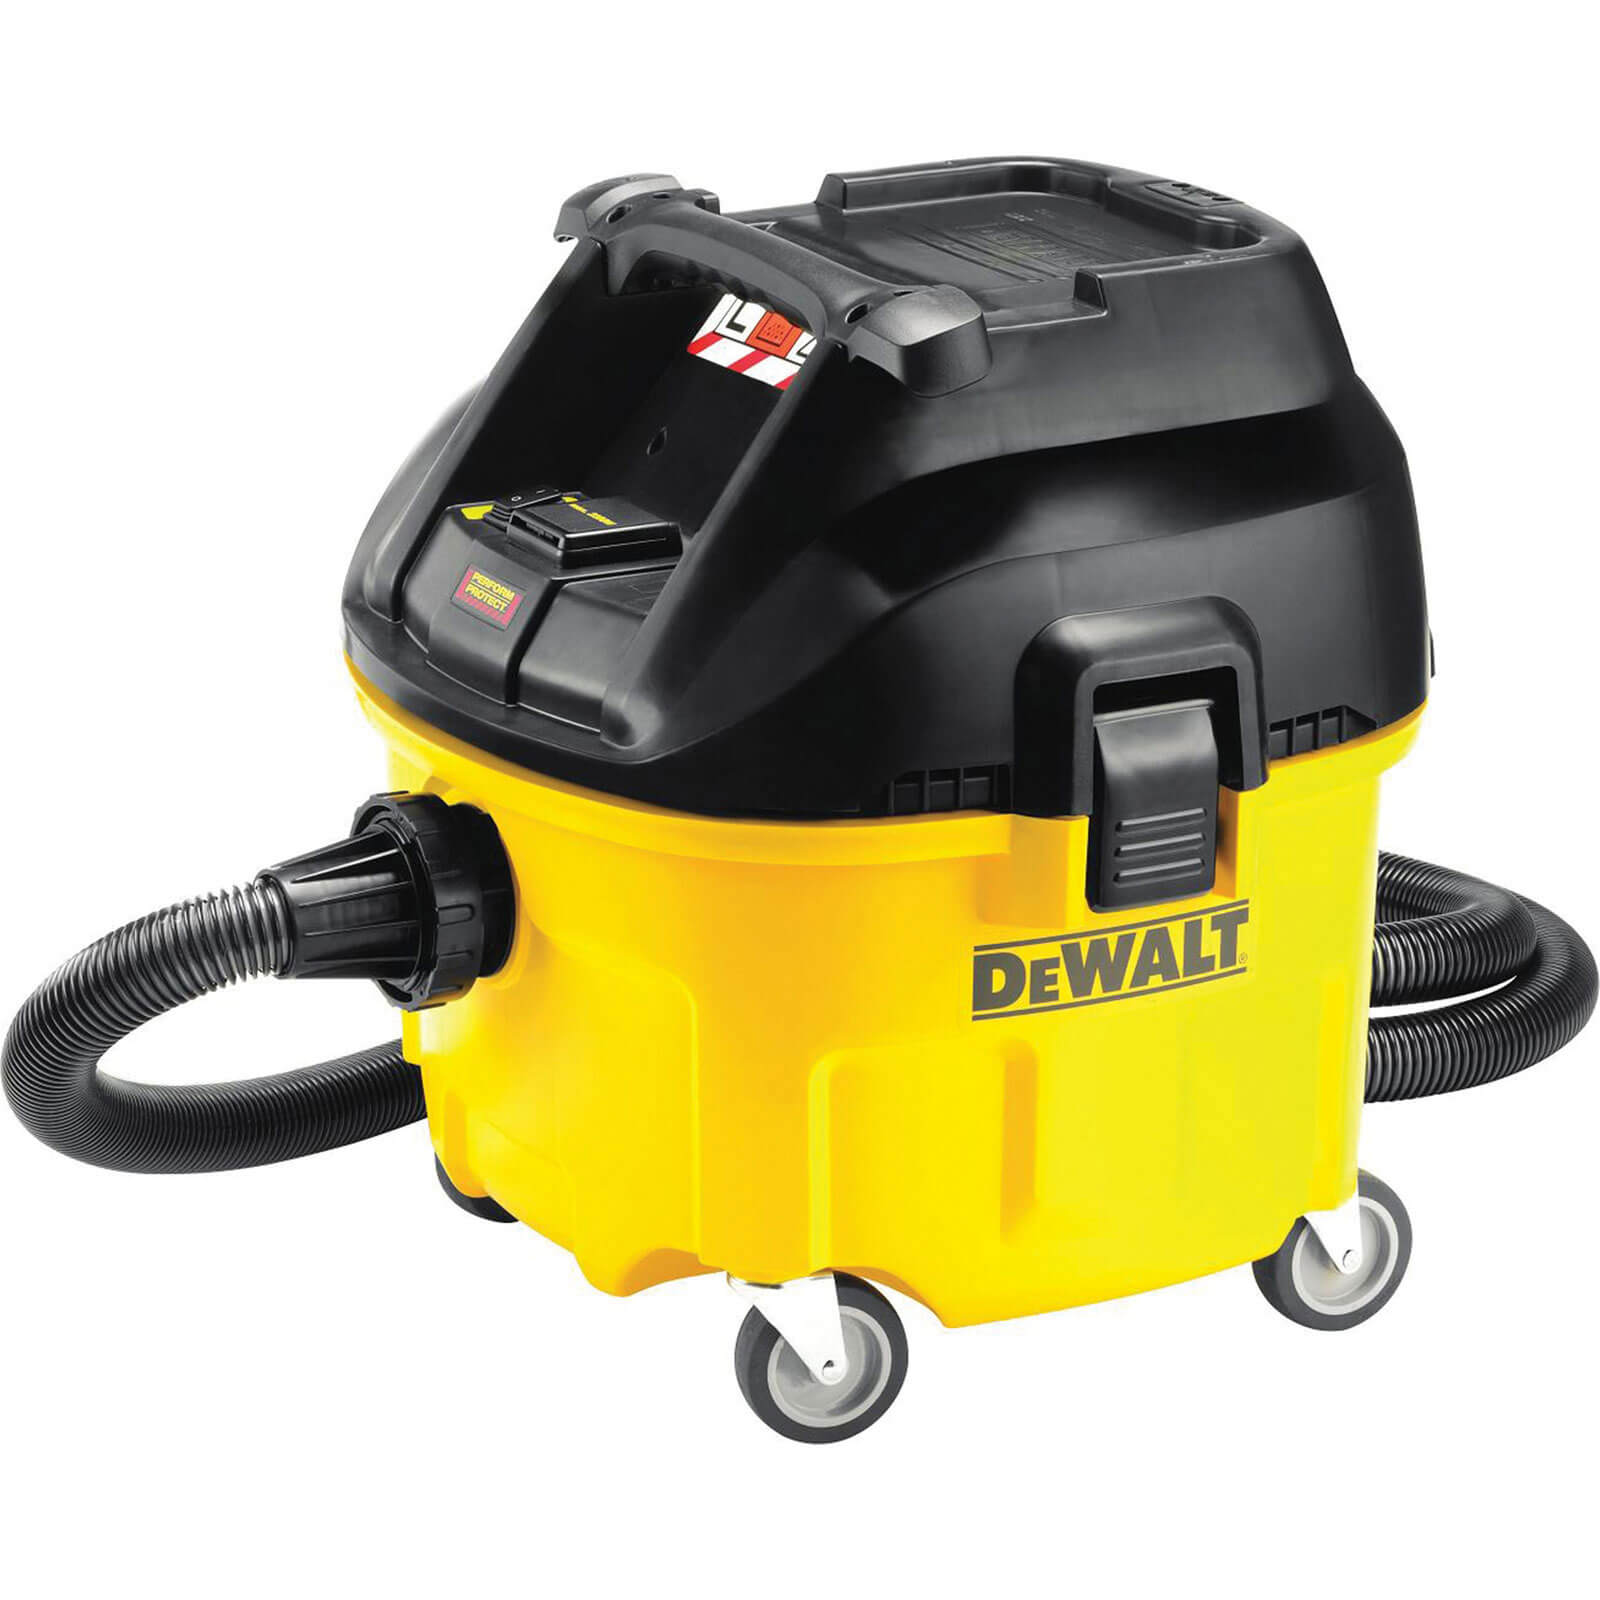 Image of DeWalt DWV901L L Class Wet and Dry Dust Extractor 240v